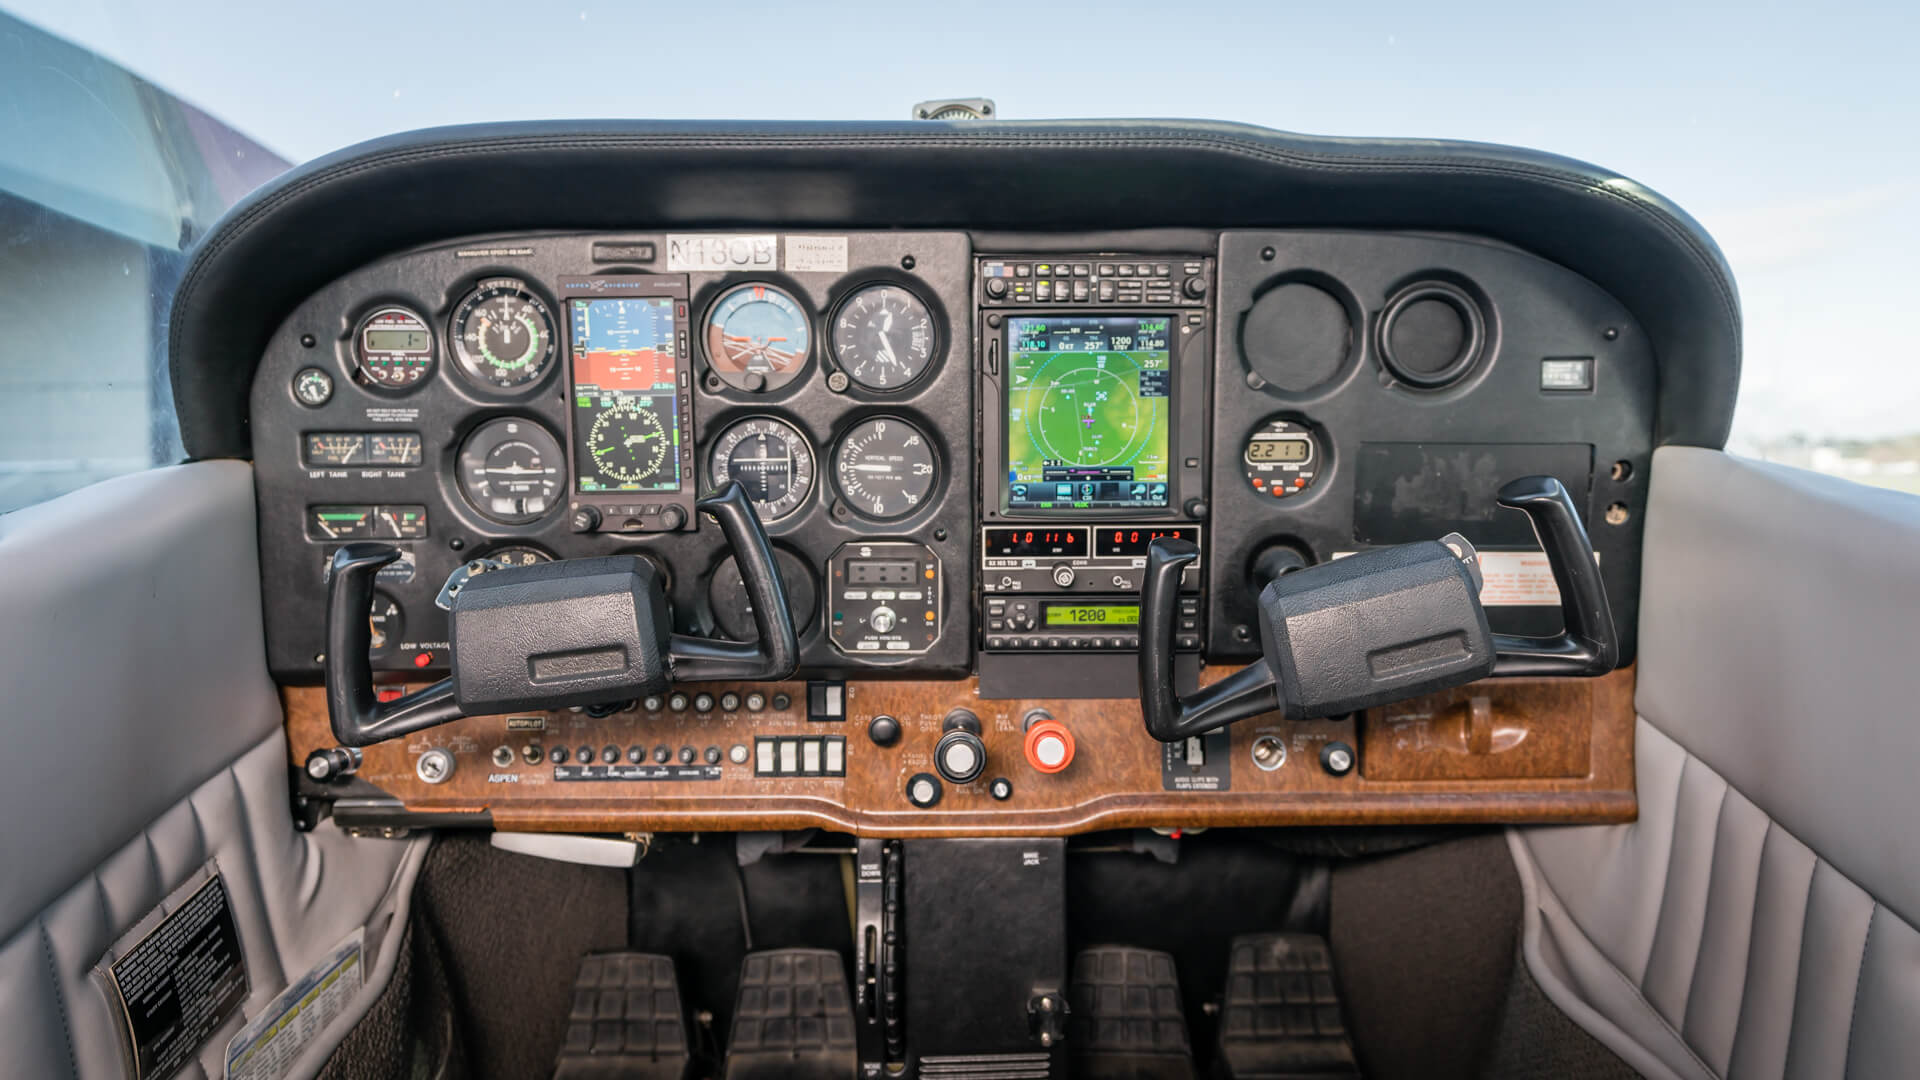 Flight Training Airplanes